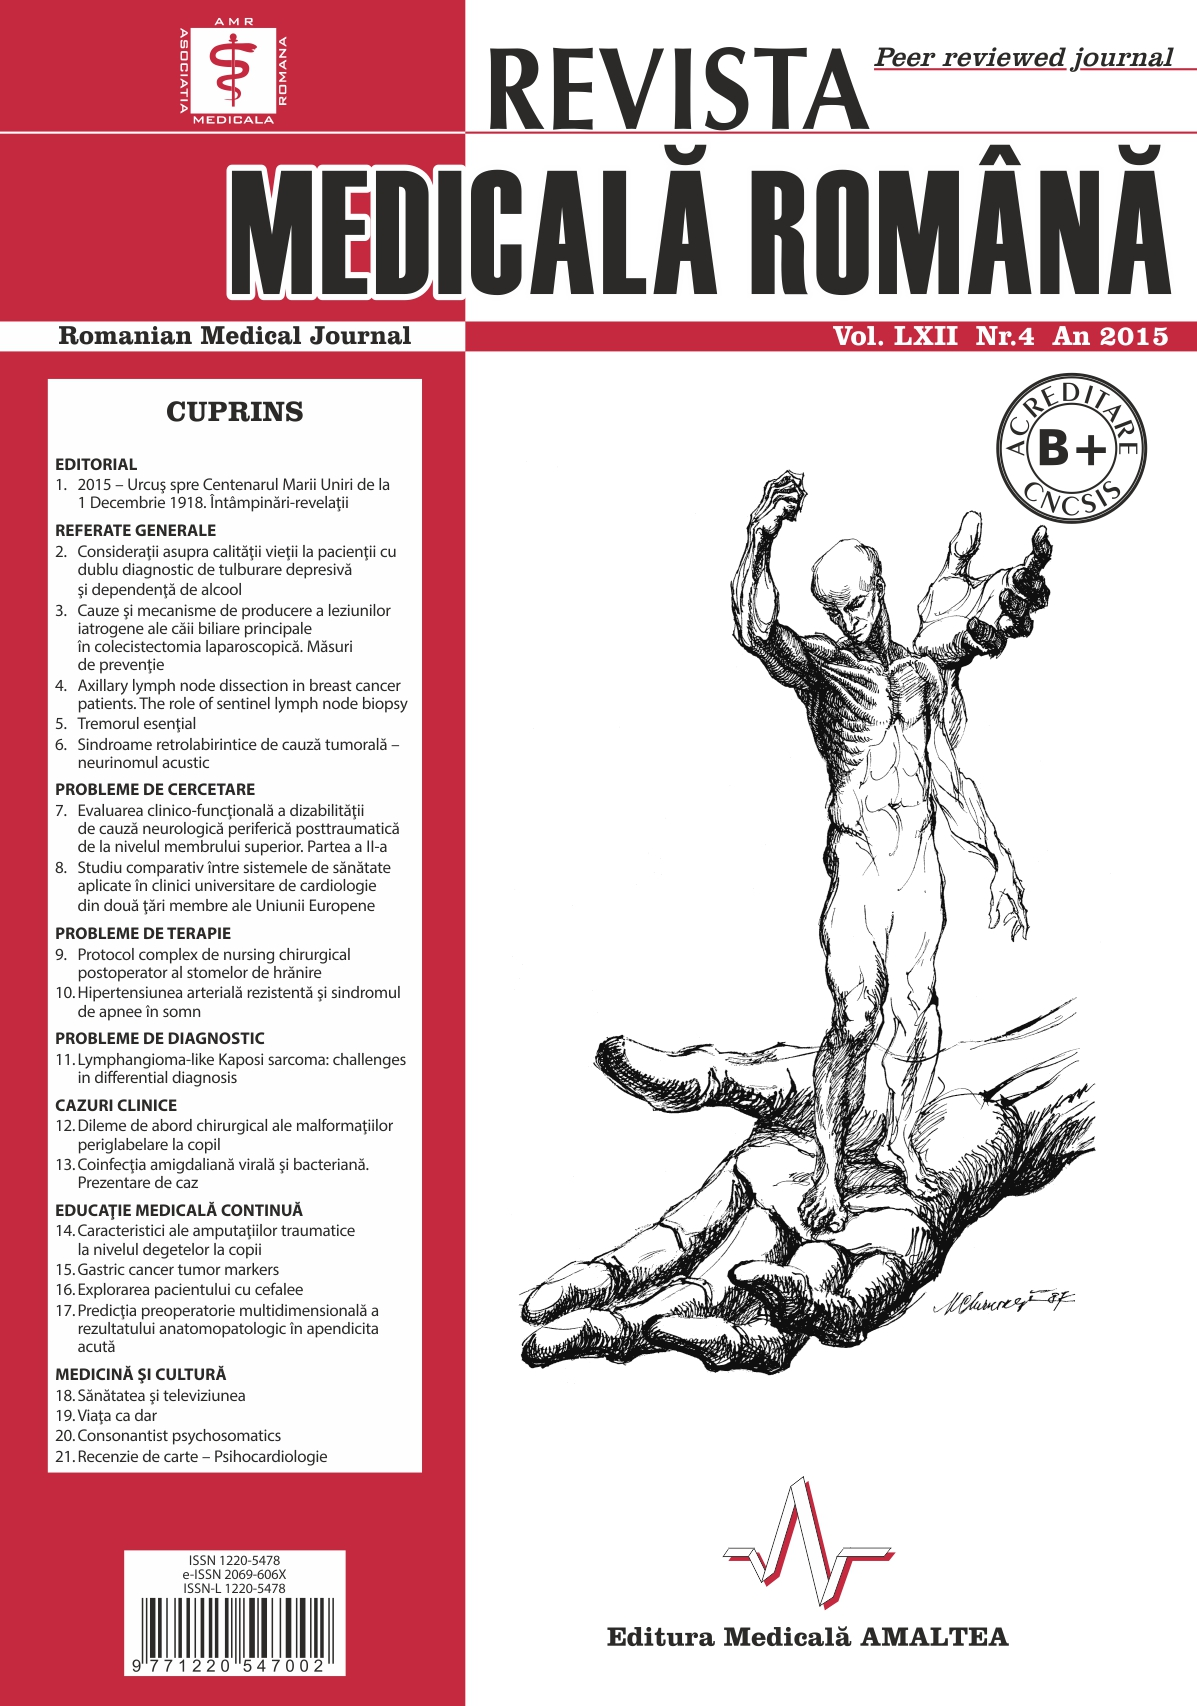 REVISTA MEDICALA ROMANA - Romanian Medical Journal, Vol. LXII, No. 4, Year 2015